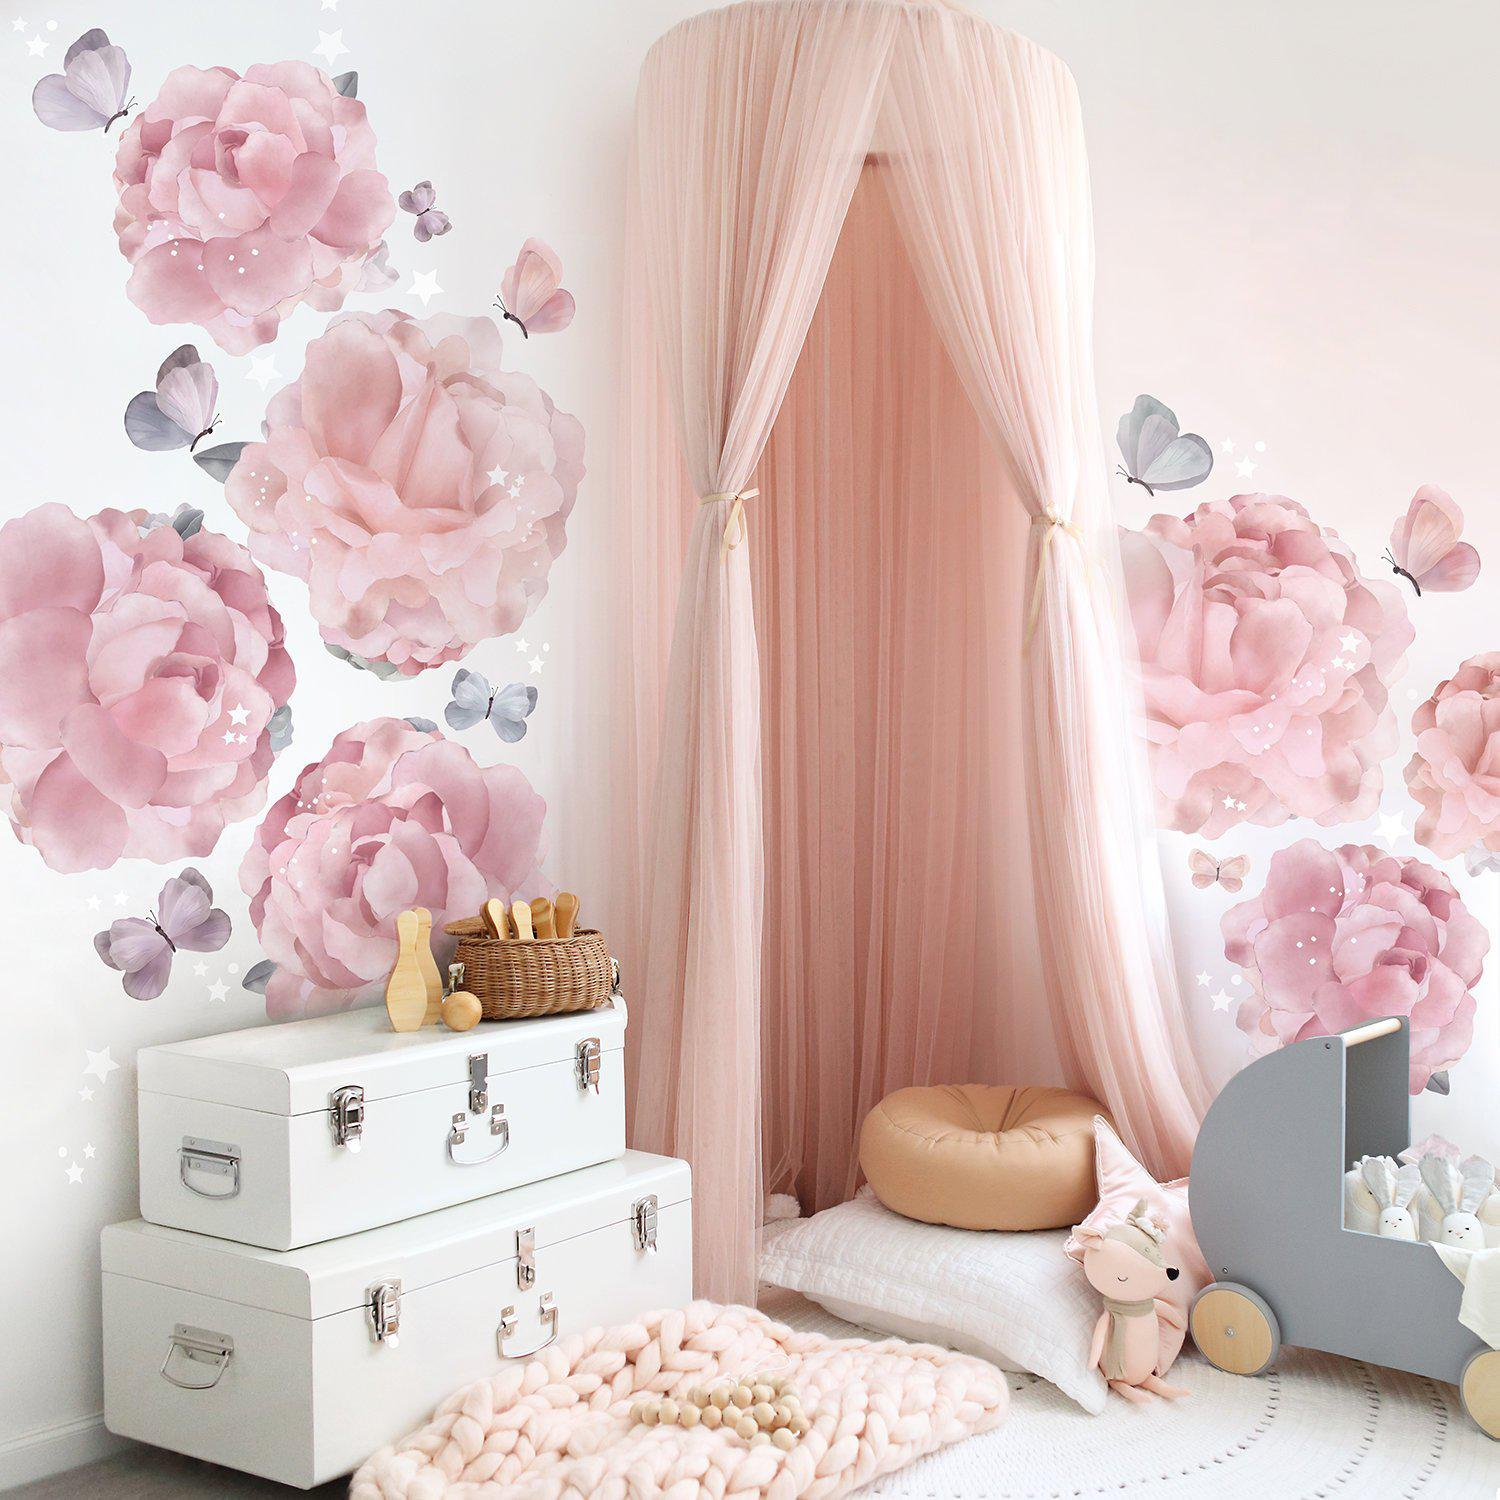 Schmooks - Peonies & Butterflies Wall Sticker